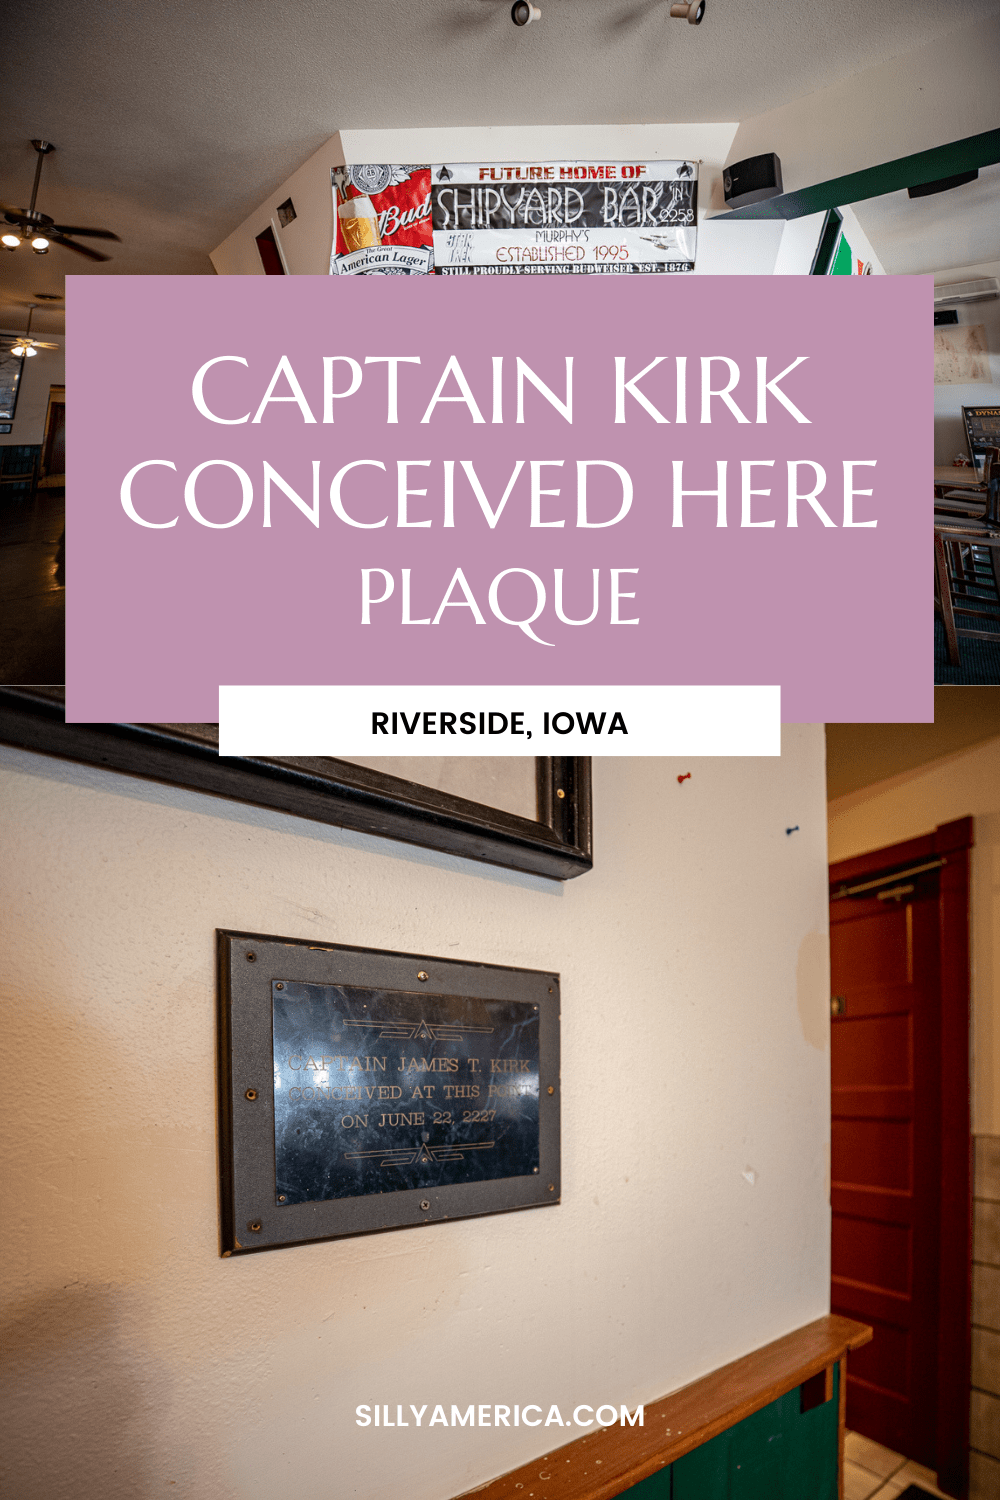 The Captain Kirk Conceived Here plaque at Murphy's Bar & Grill in Riverside, Iowa - the future birthplace of Star Trek's Captain James T. Kirk. #StarTrek #IowaRoadsideAttractions #IowaRoadsideAttraction #RoadsideAttractions #RoadsideAttraction #RoadTrip #IowaRoadTrip #IowaThingsToDo #IowaRoadTripBucketLists #IowaBucketList #IowaRoadTripIdeas #IowaTravel